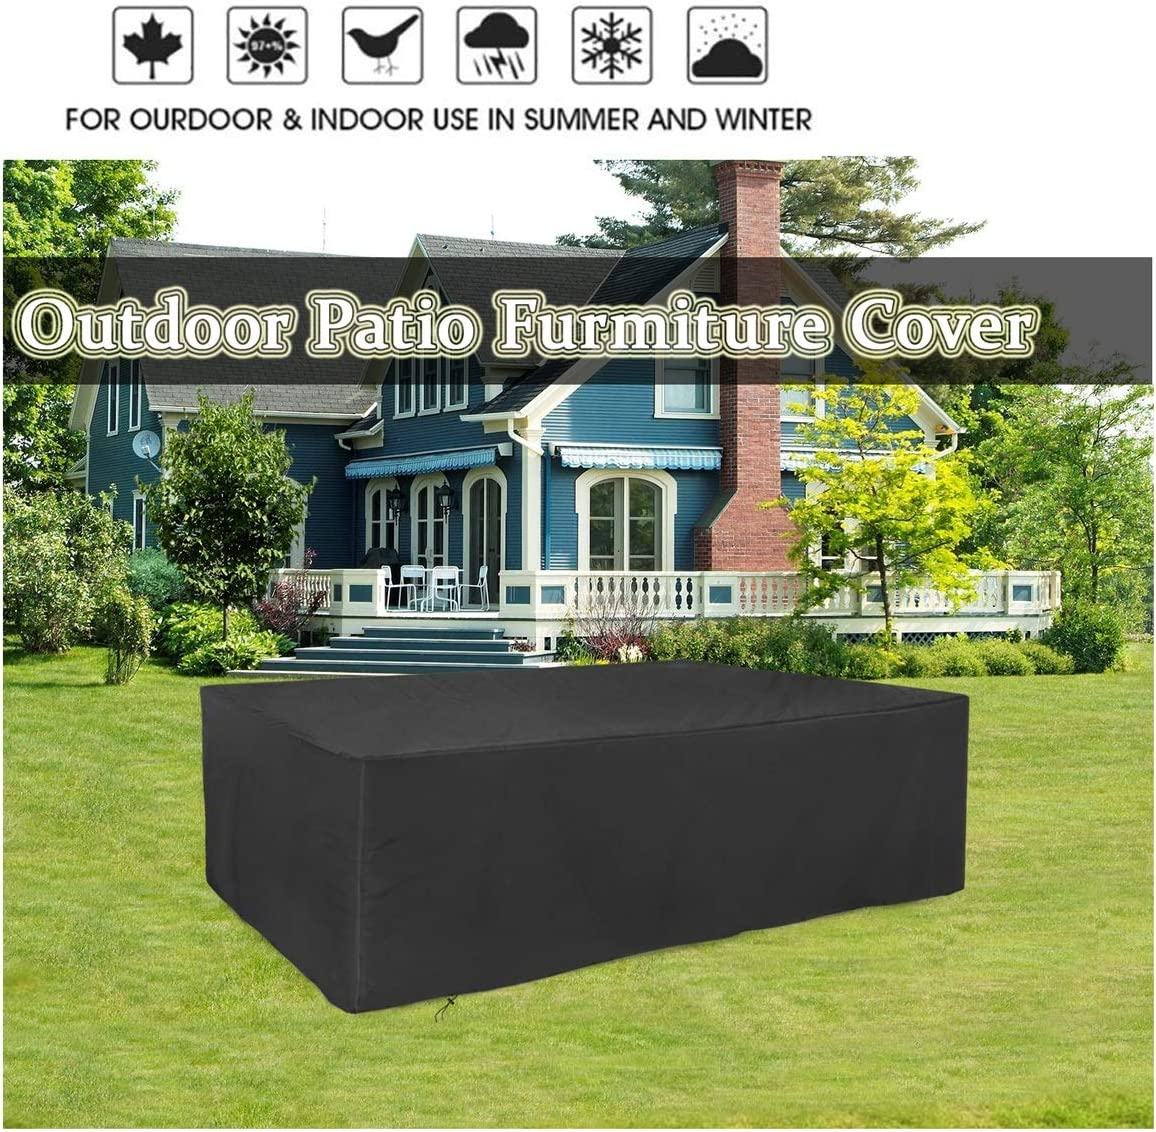 Amazon Com Garden Furniture Covers Waterproof Outdoor Furniture Table Cover With Storage Bag Heavy Duty Patio Furniture Covers Breathable 420d Oxford Fabric Patio Table Cover Prevent Bad Weather Black Garden